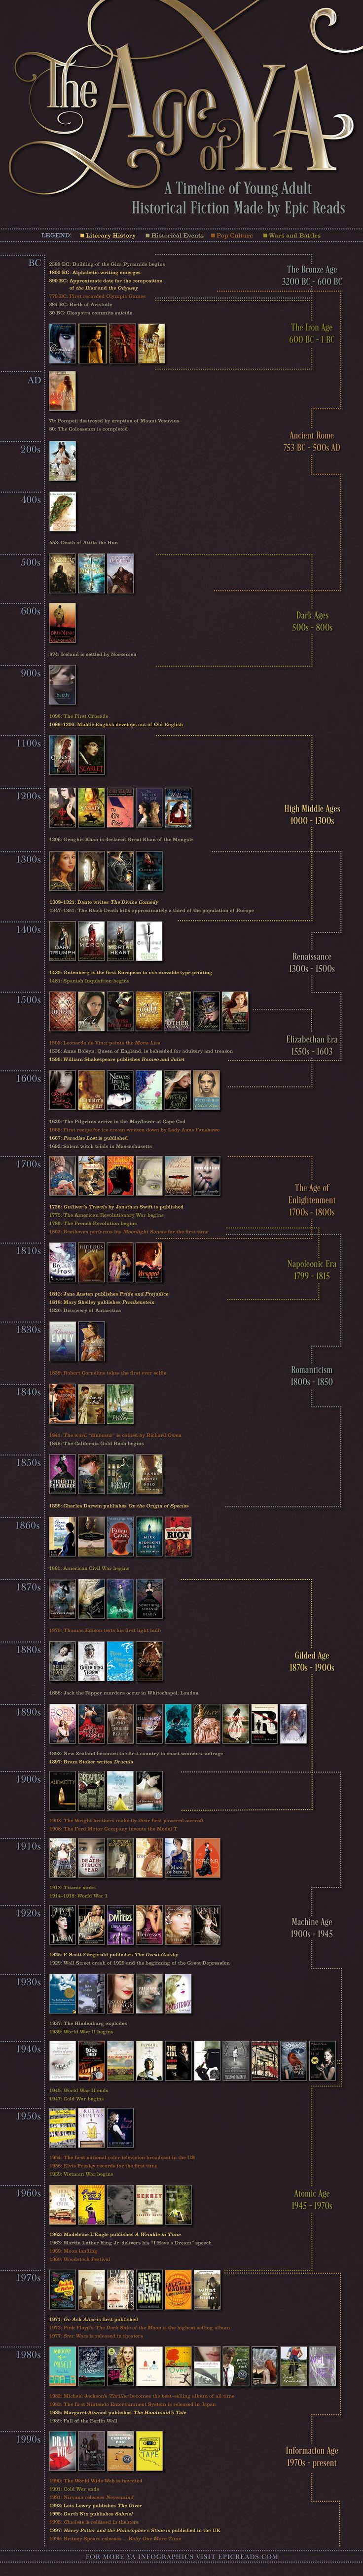 Infographic: Age Of Ya #historical #fiction Made By Epic Reads